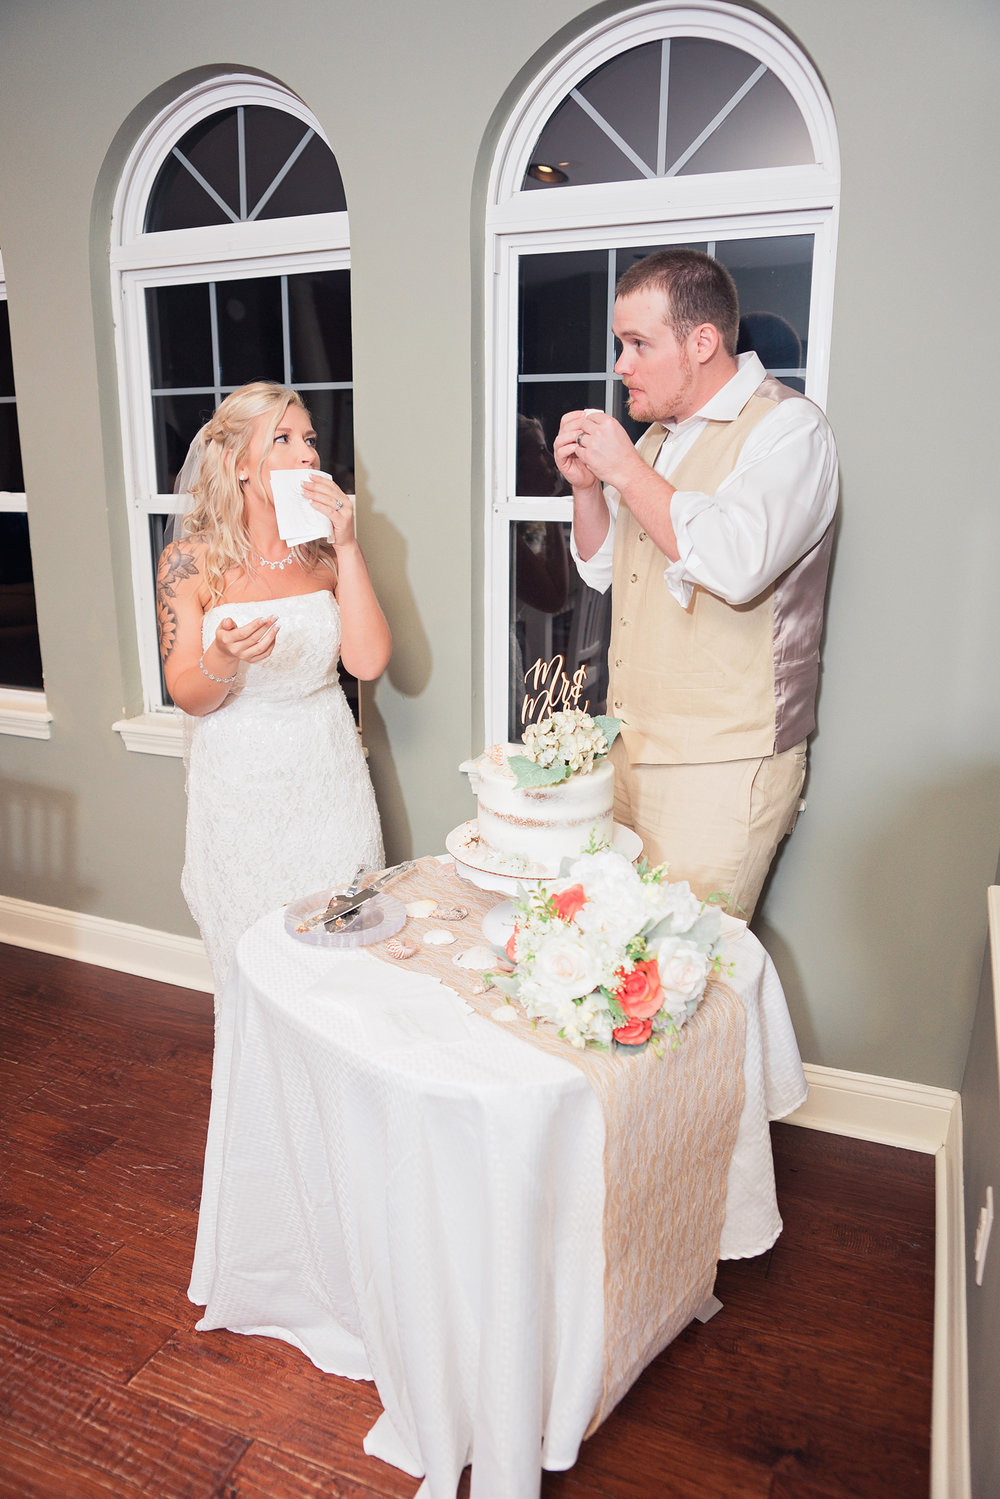 Cake_and_party (19).jpg